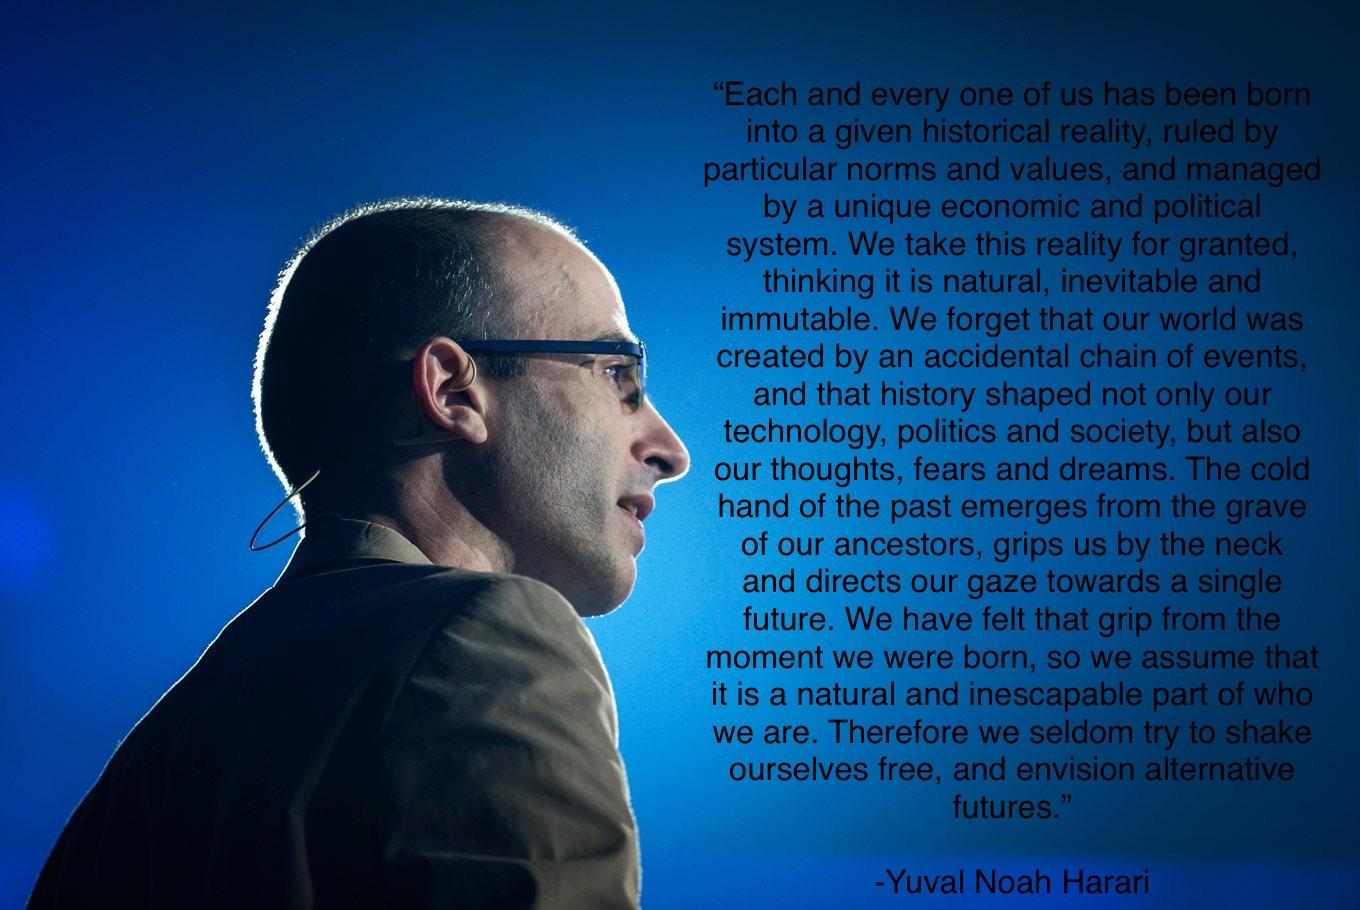 """Each and every one of us has been born into a given historical reality"" -Yuval Noah Harari [1360 × 910]"